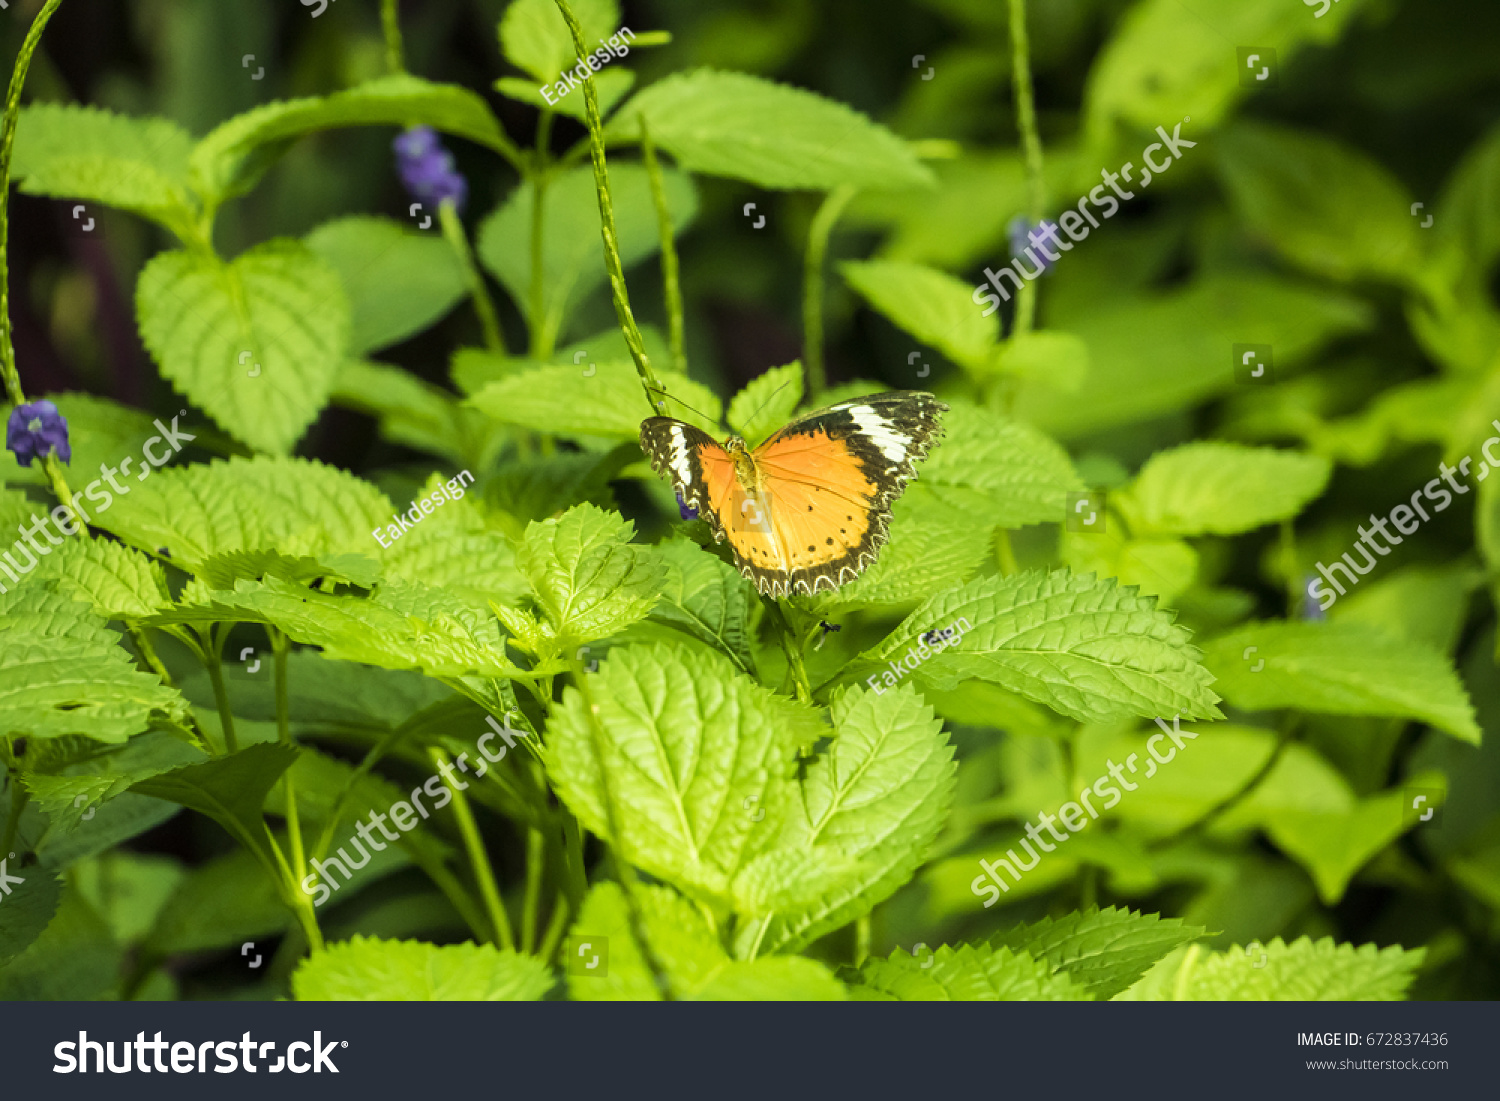 Beautiful Butterfly On Colorful Flower On Stock Photo - Colorful flower garden background